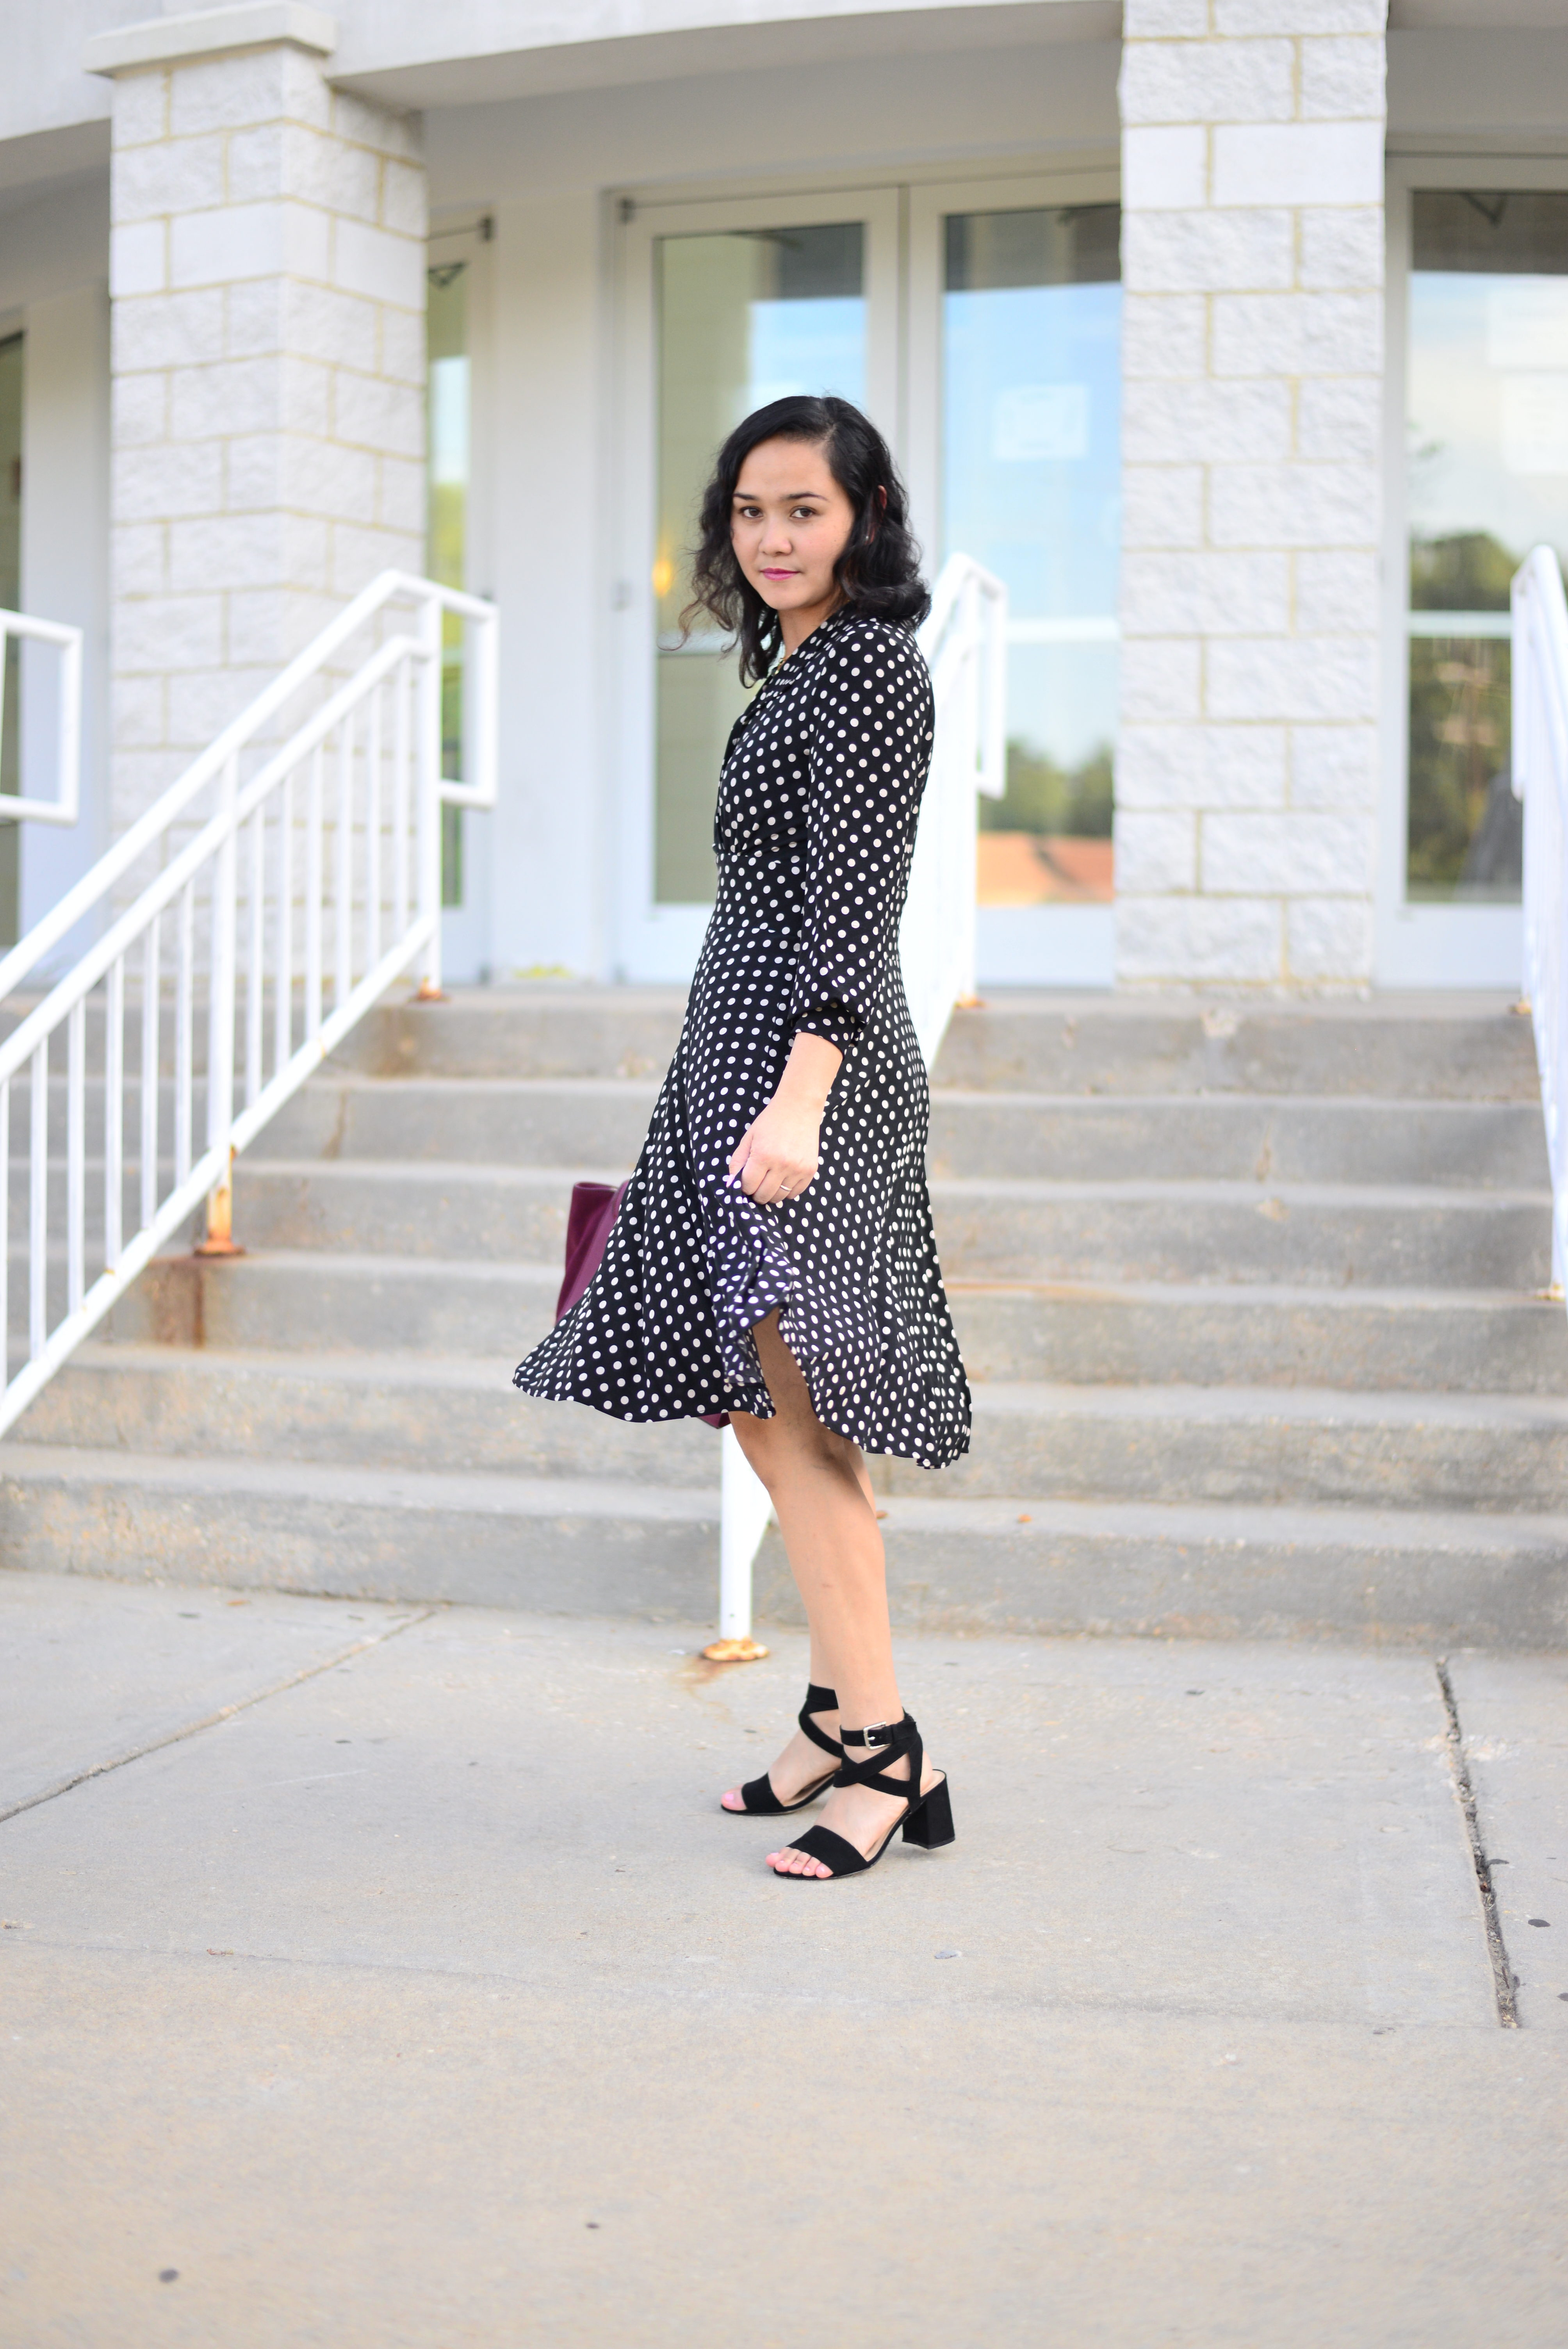 Polka Dot Dress for Fall